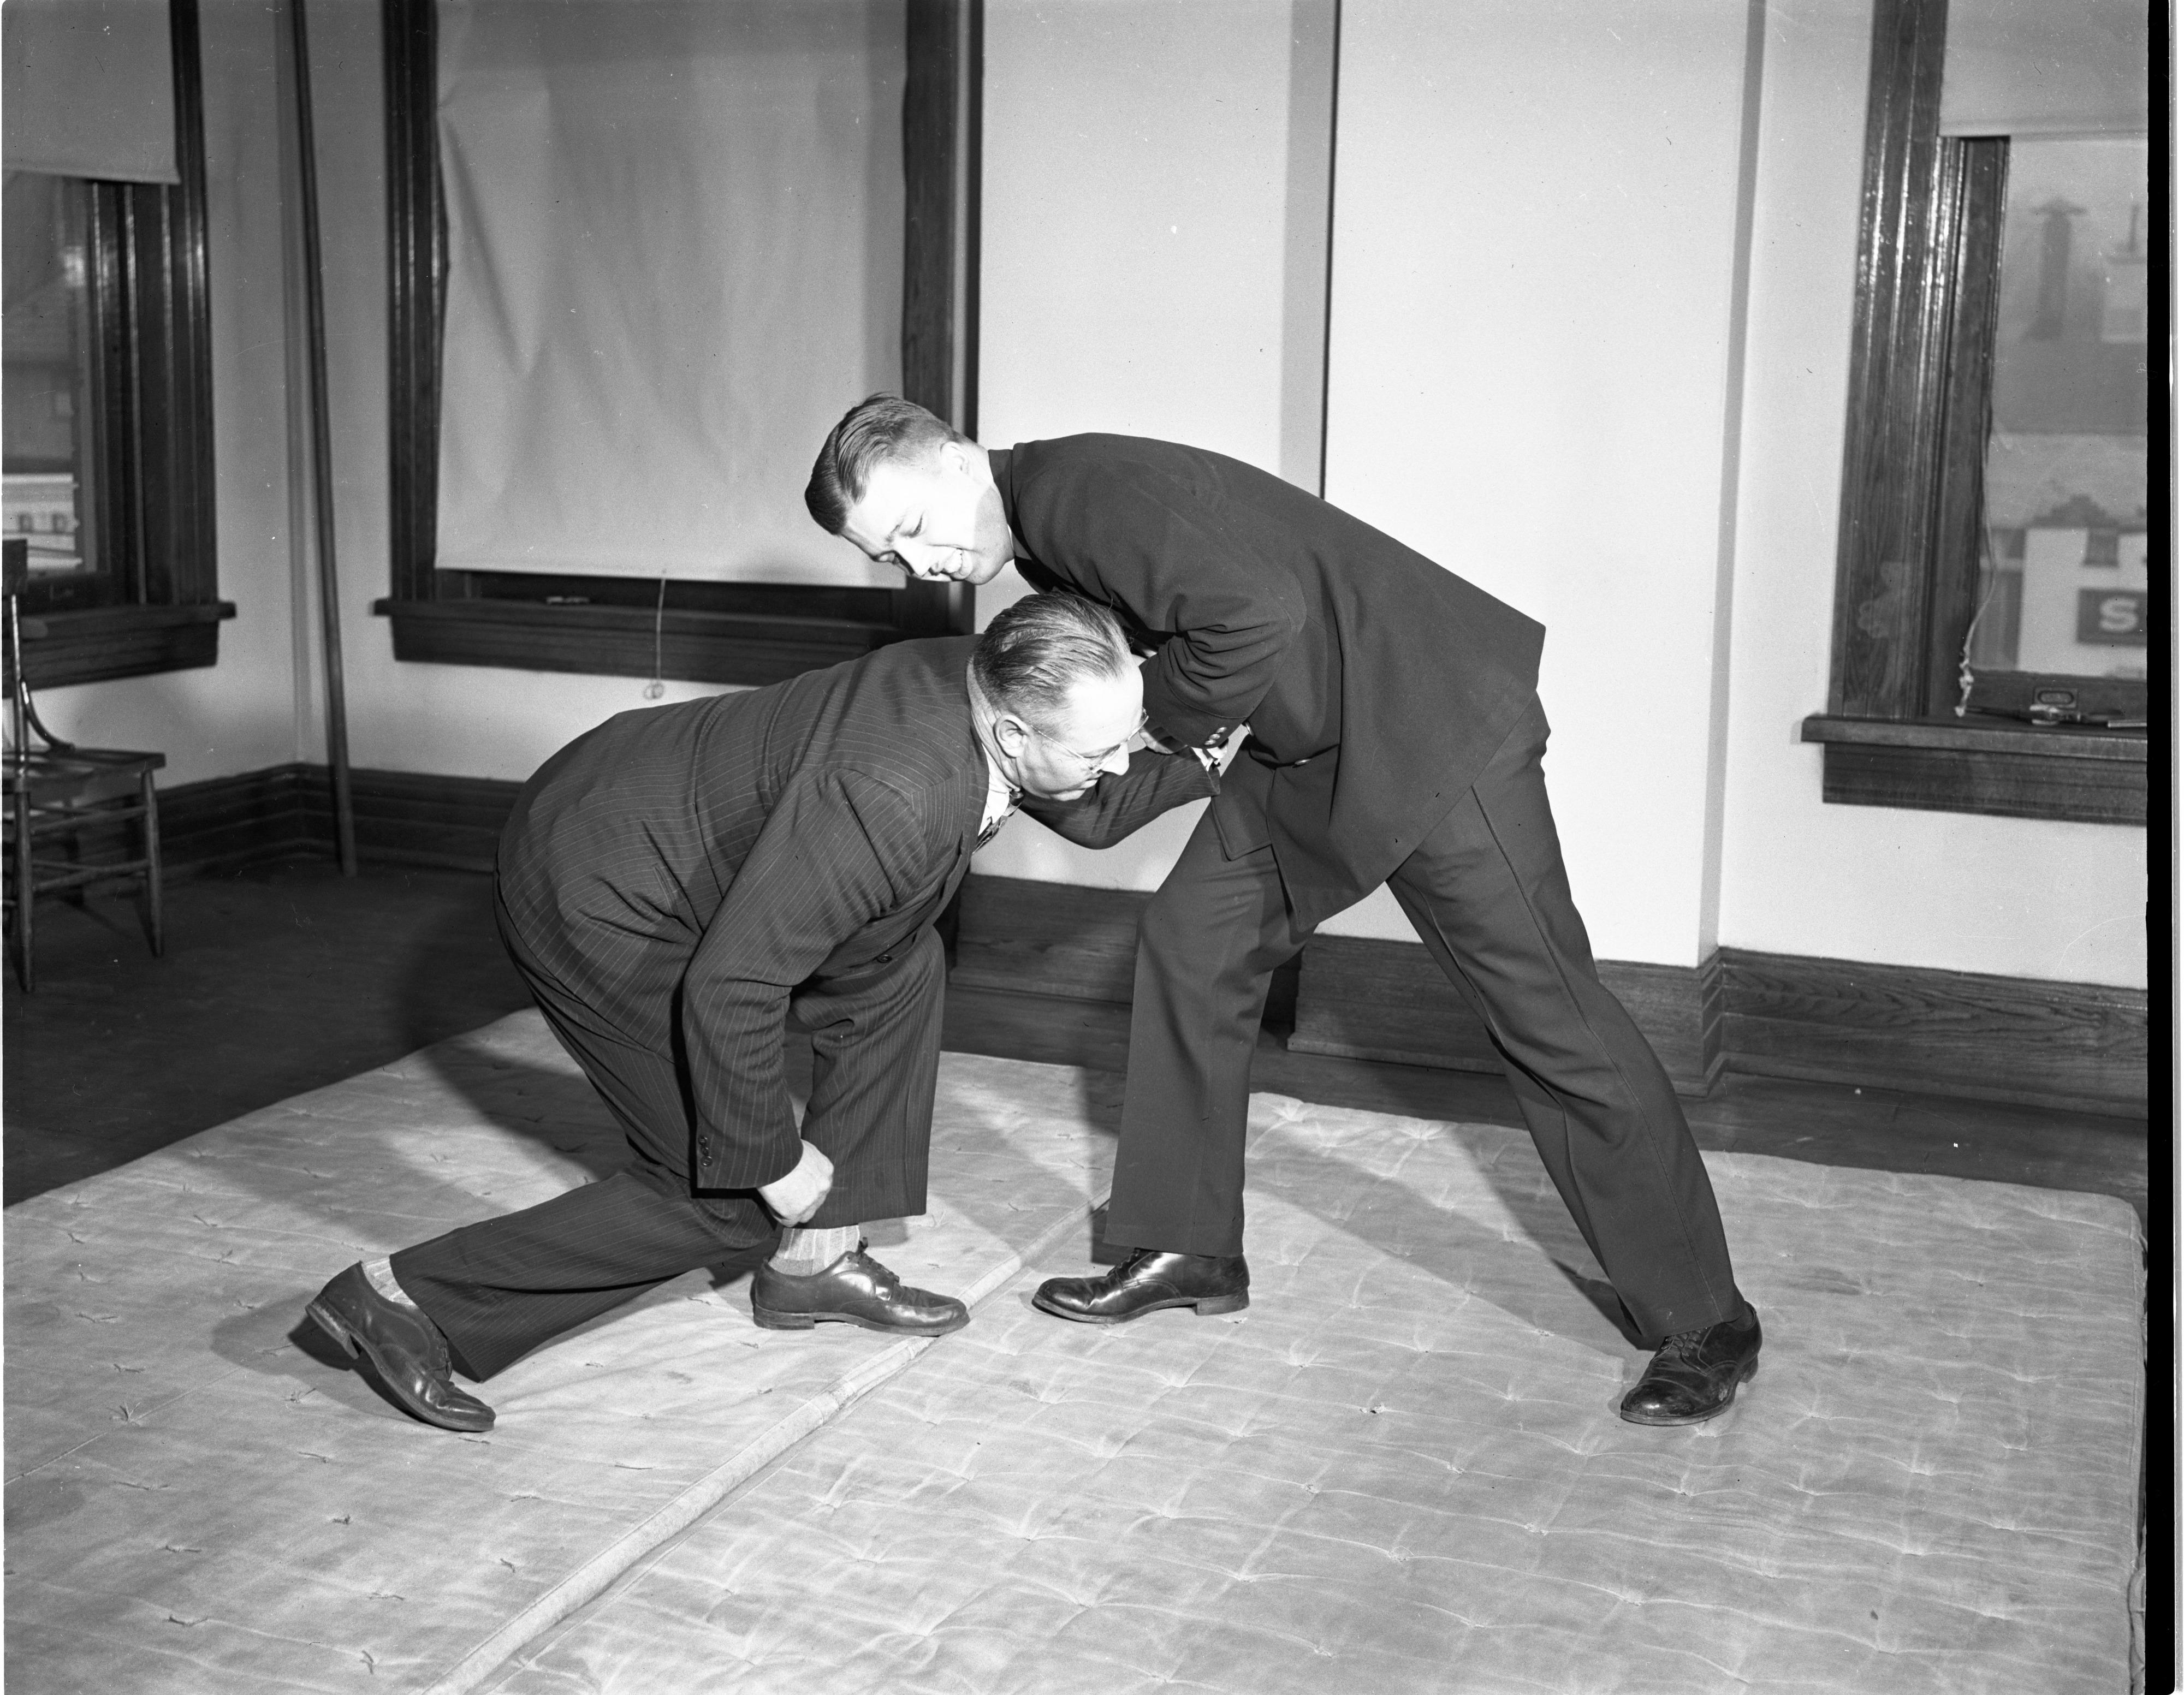 Ann Arbor Police Officer William Marz & Patrolman Harold Olson Practice A Defensive Pass in Judo, March 1947 image